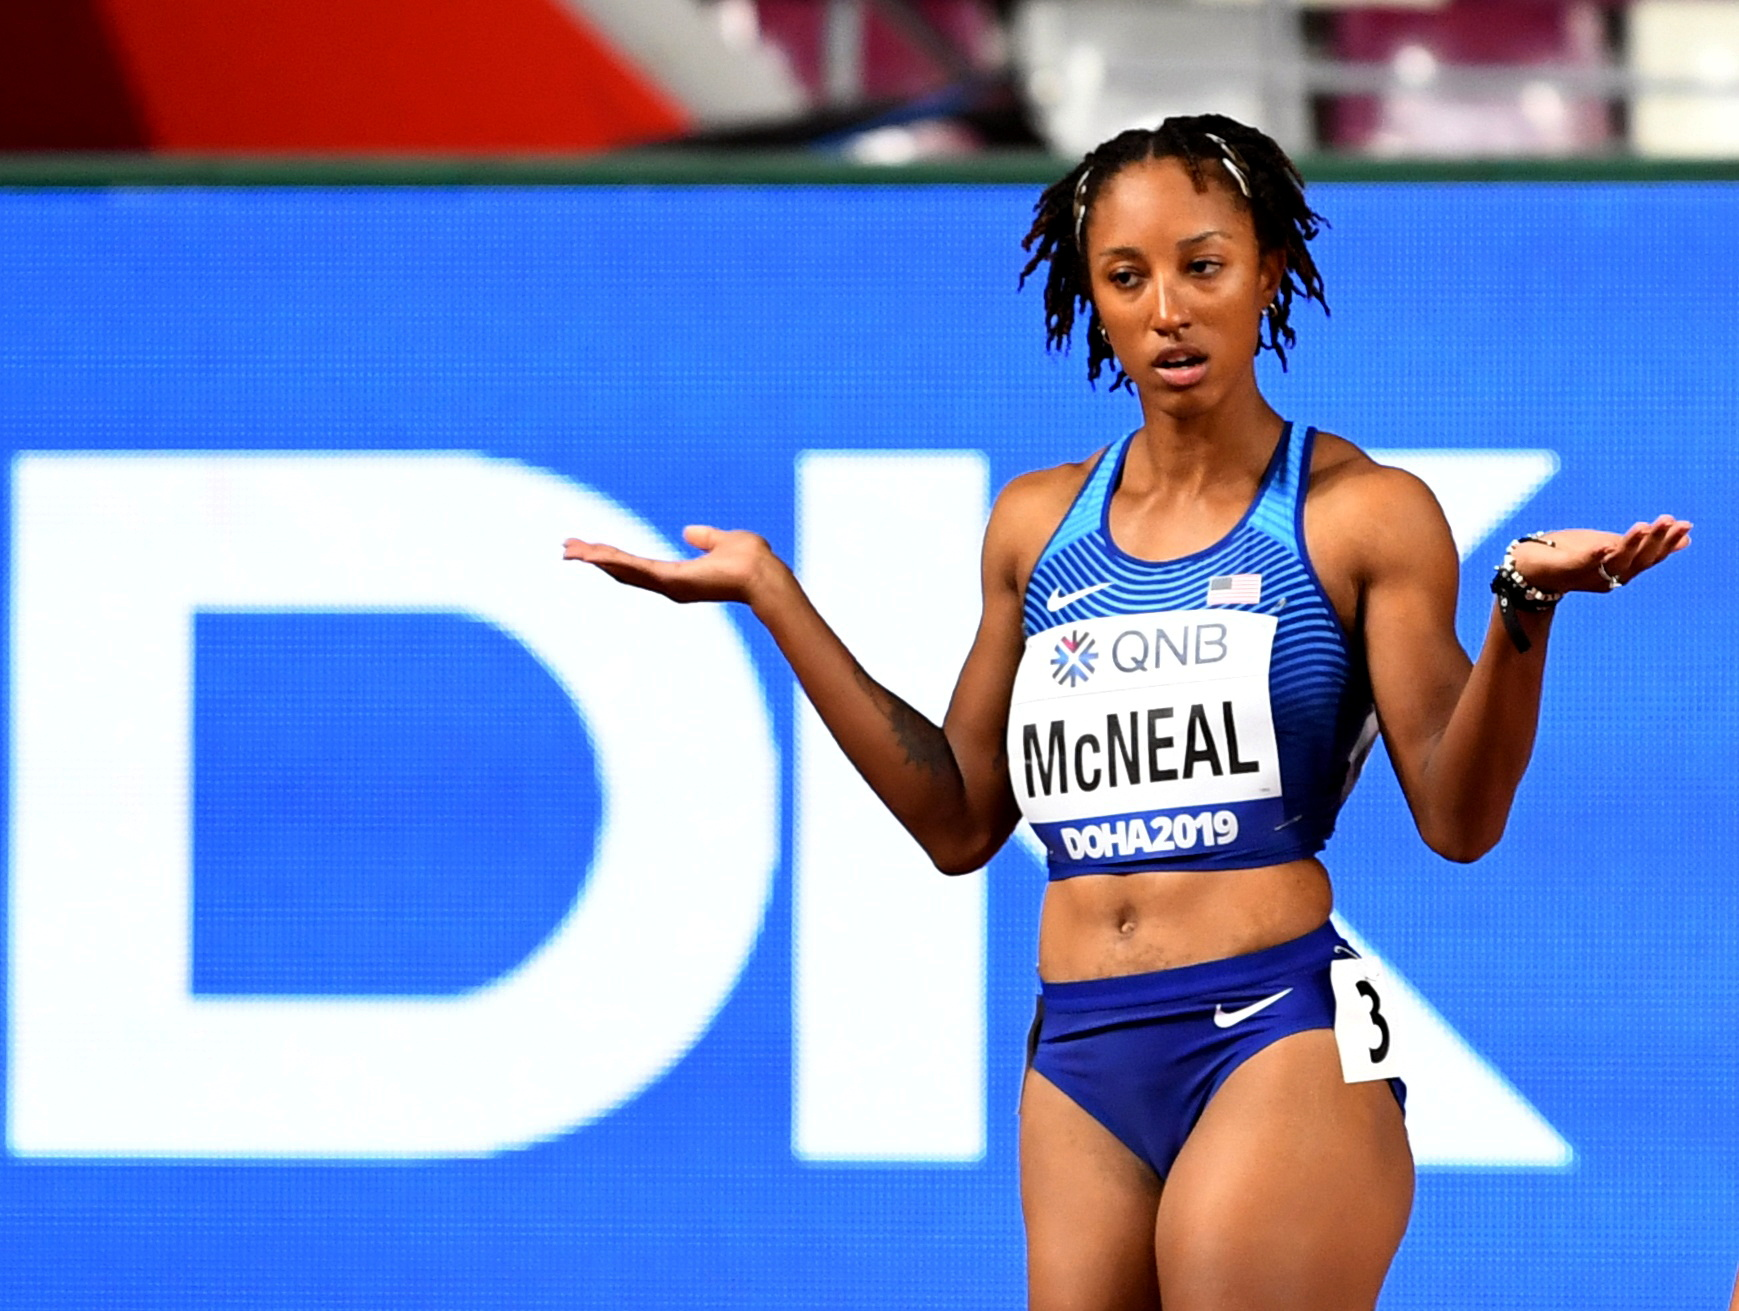 Athletics - World Athletics Championships - Doha 2019 - Women's 100 Metres Hurdles Heats - Khalifa International Stadium, Doha, Qatar - October 5, 2019  Brianna McNeal of the U.S. reacts after being disqualified for a false start REUTERS/Dylan Martinez/File Photo